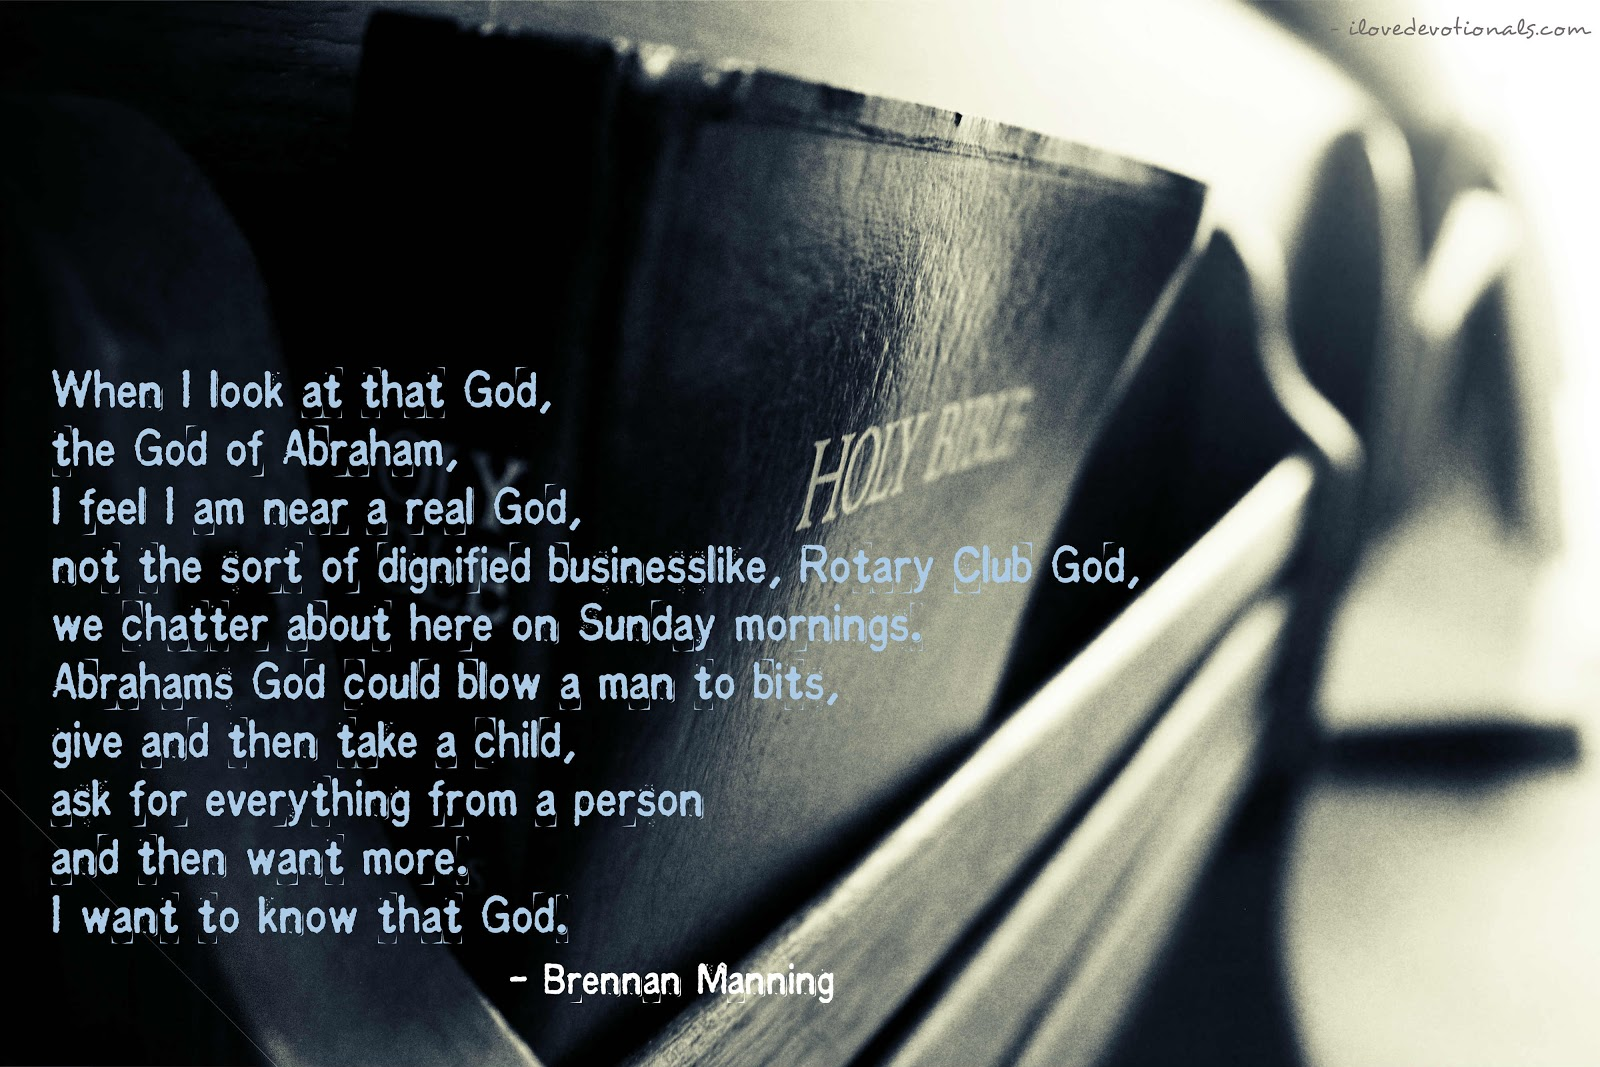 brennan manning quote small